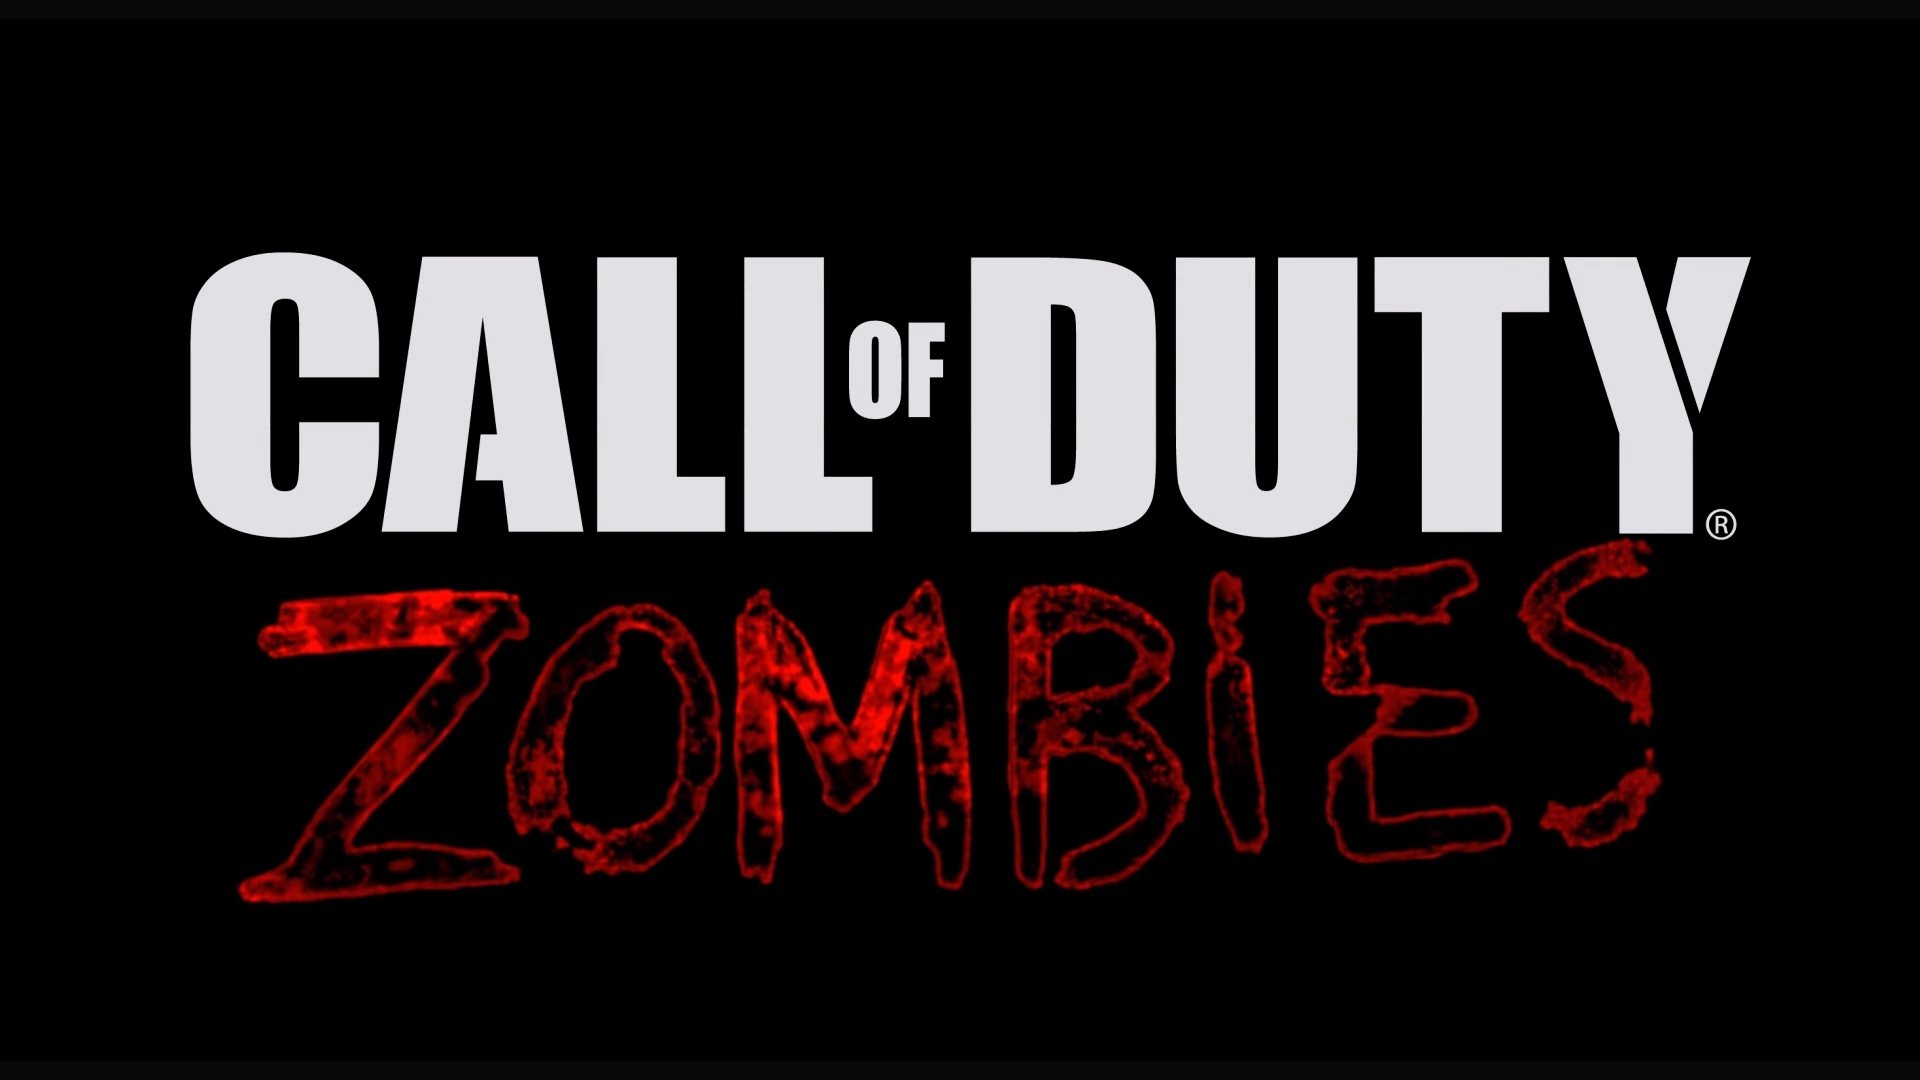 Zombies (Treyarch) | Call of Duty Wiki | FANDOM powered by Wikia on cod ghosts, cod blackops 2, cod of duty fish game, new super mario bros 2 maps, cod 2 buried map, cod dlc maps, cod map layouts, black ops 3 maps, cod zombie maps, black ops zombie maps, cod camp funny, cod mw3 maps, cod mw2 maps, mortal kombat 2 maps, cod world at war maps, left 4 dead 2 maps, cod 2 tranzit map, dead island 2 maps, cod bo 2 multiplayer, cod uprising,